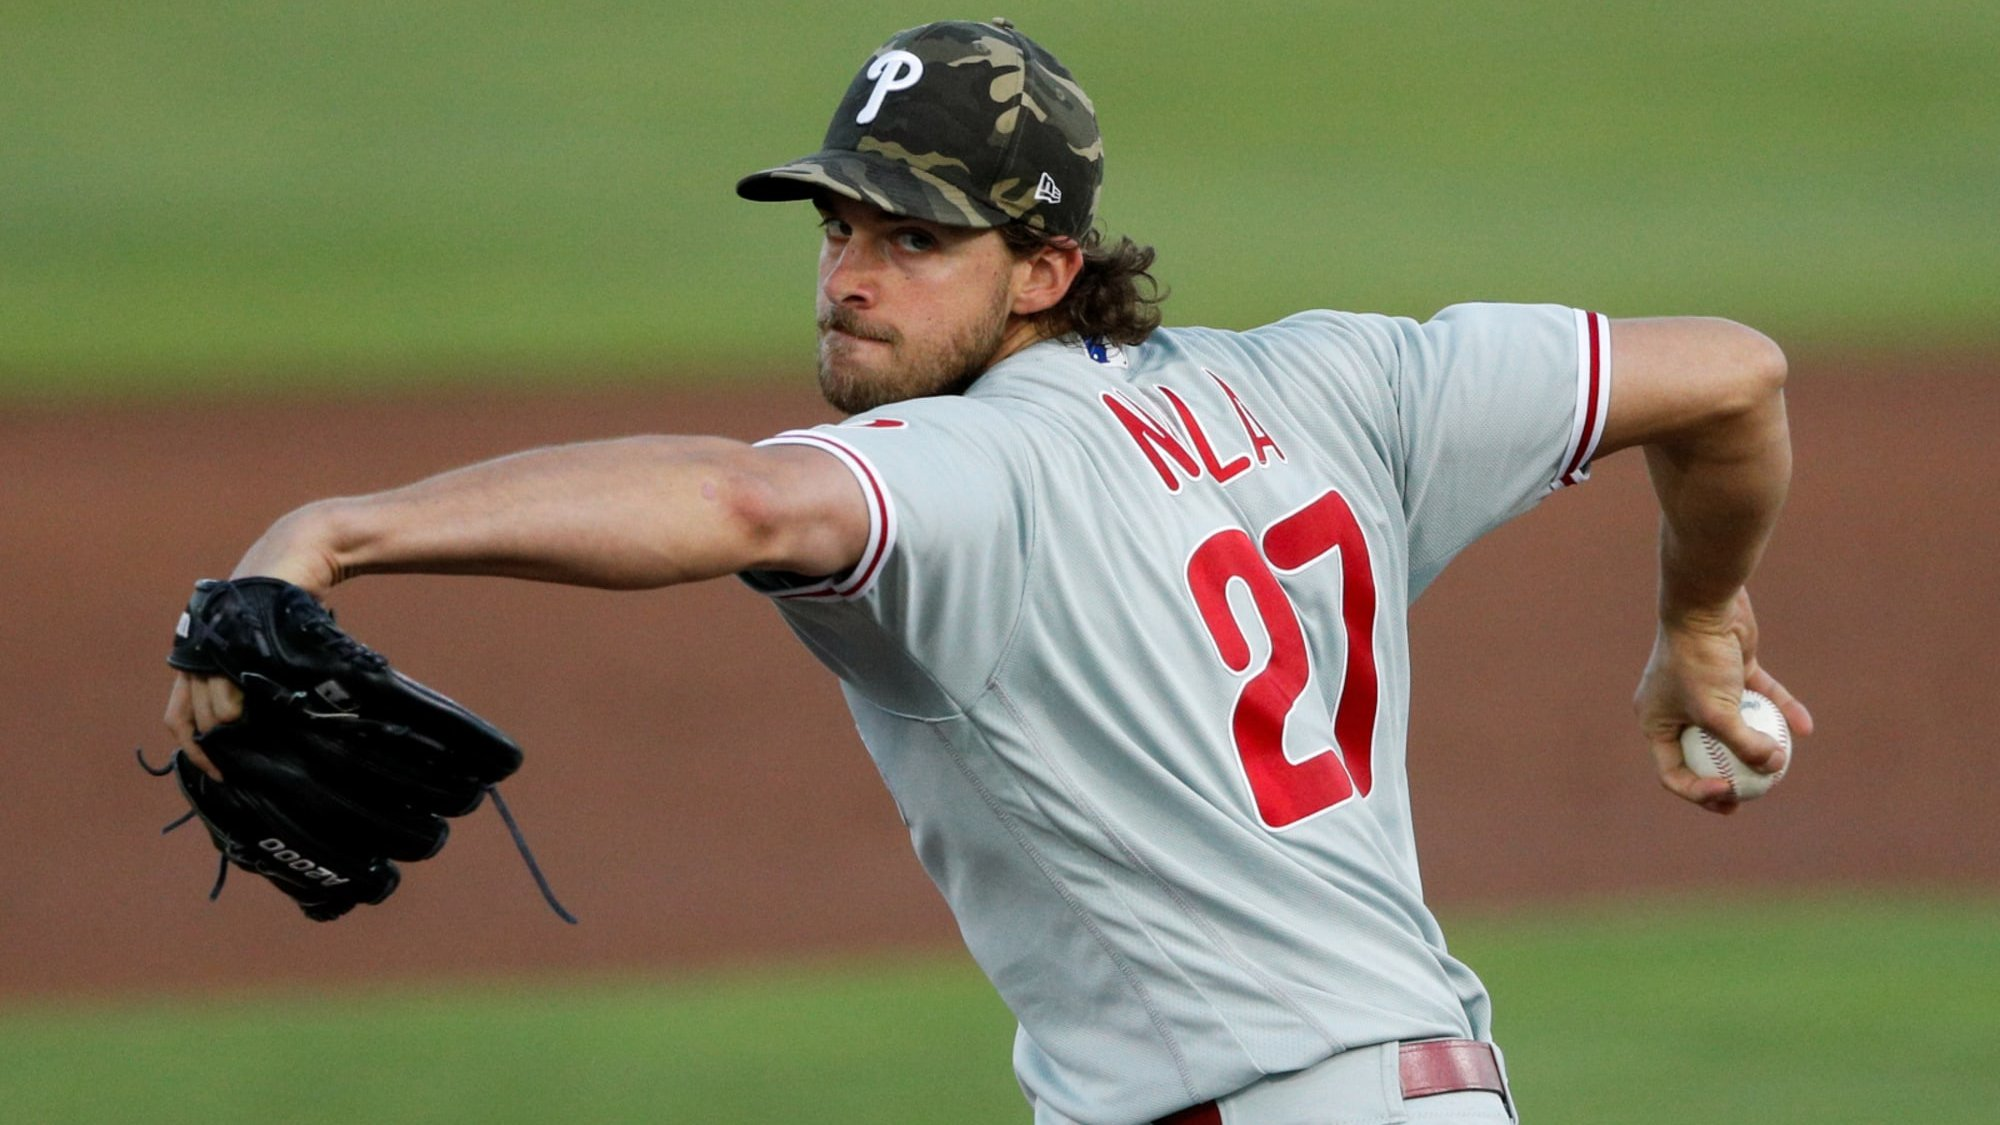 Philadelphia Phillies vs New York Yankees Betting Preview (July 20): Yankees Look to Build Off of Rivalry Series Win as Phillies Visit the Bronx